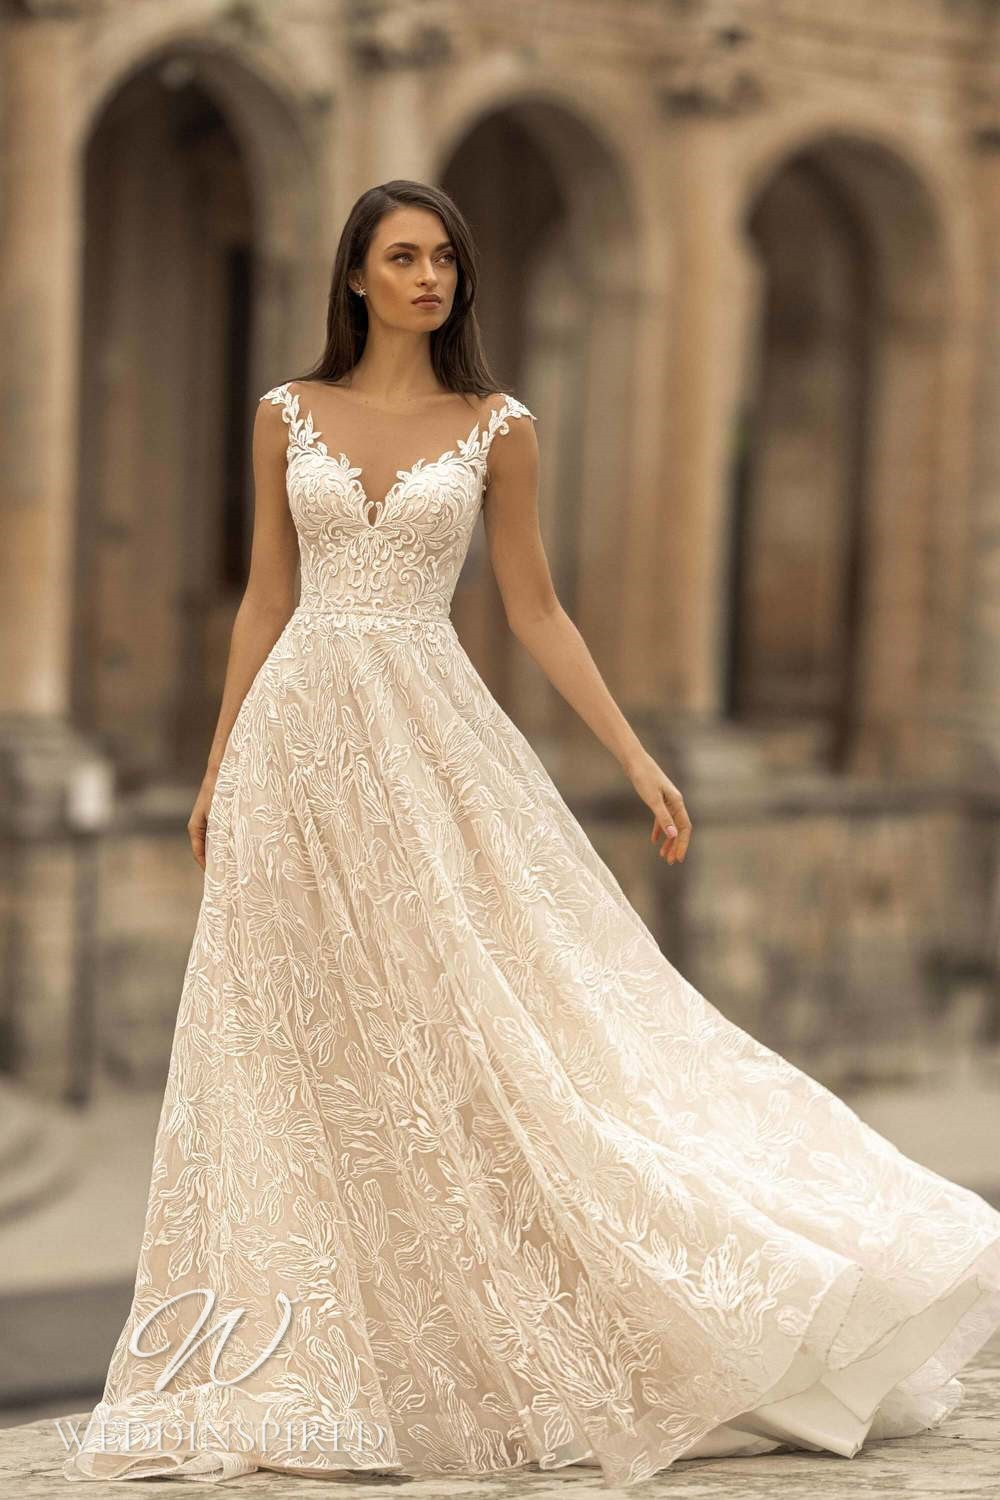 A Lussano 2021 ivory lace off the shoulder A-line wedding dress